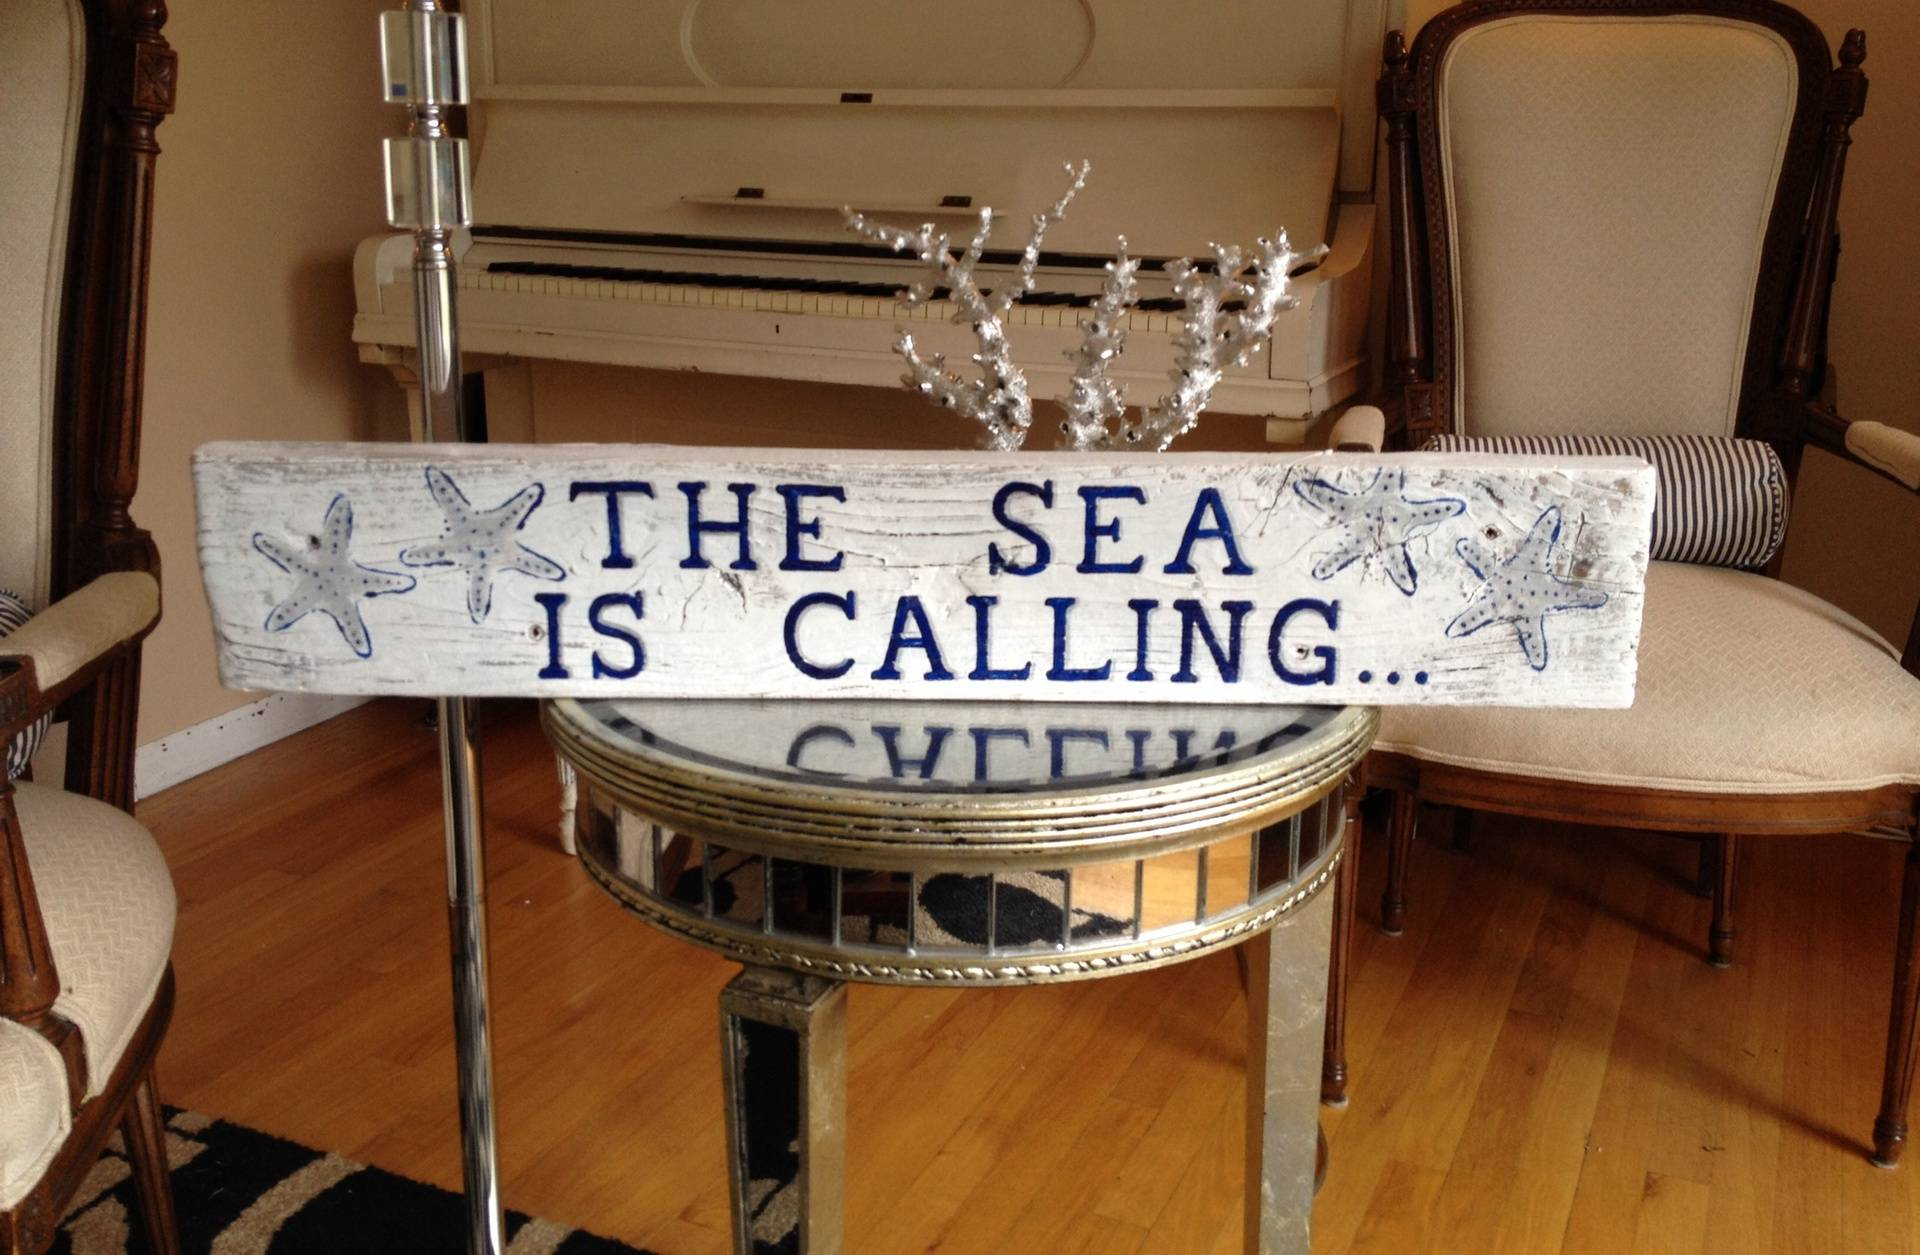 The Sea is Calling